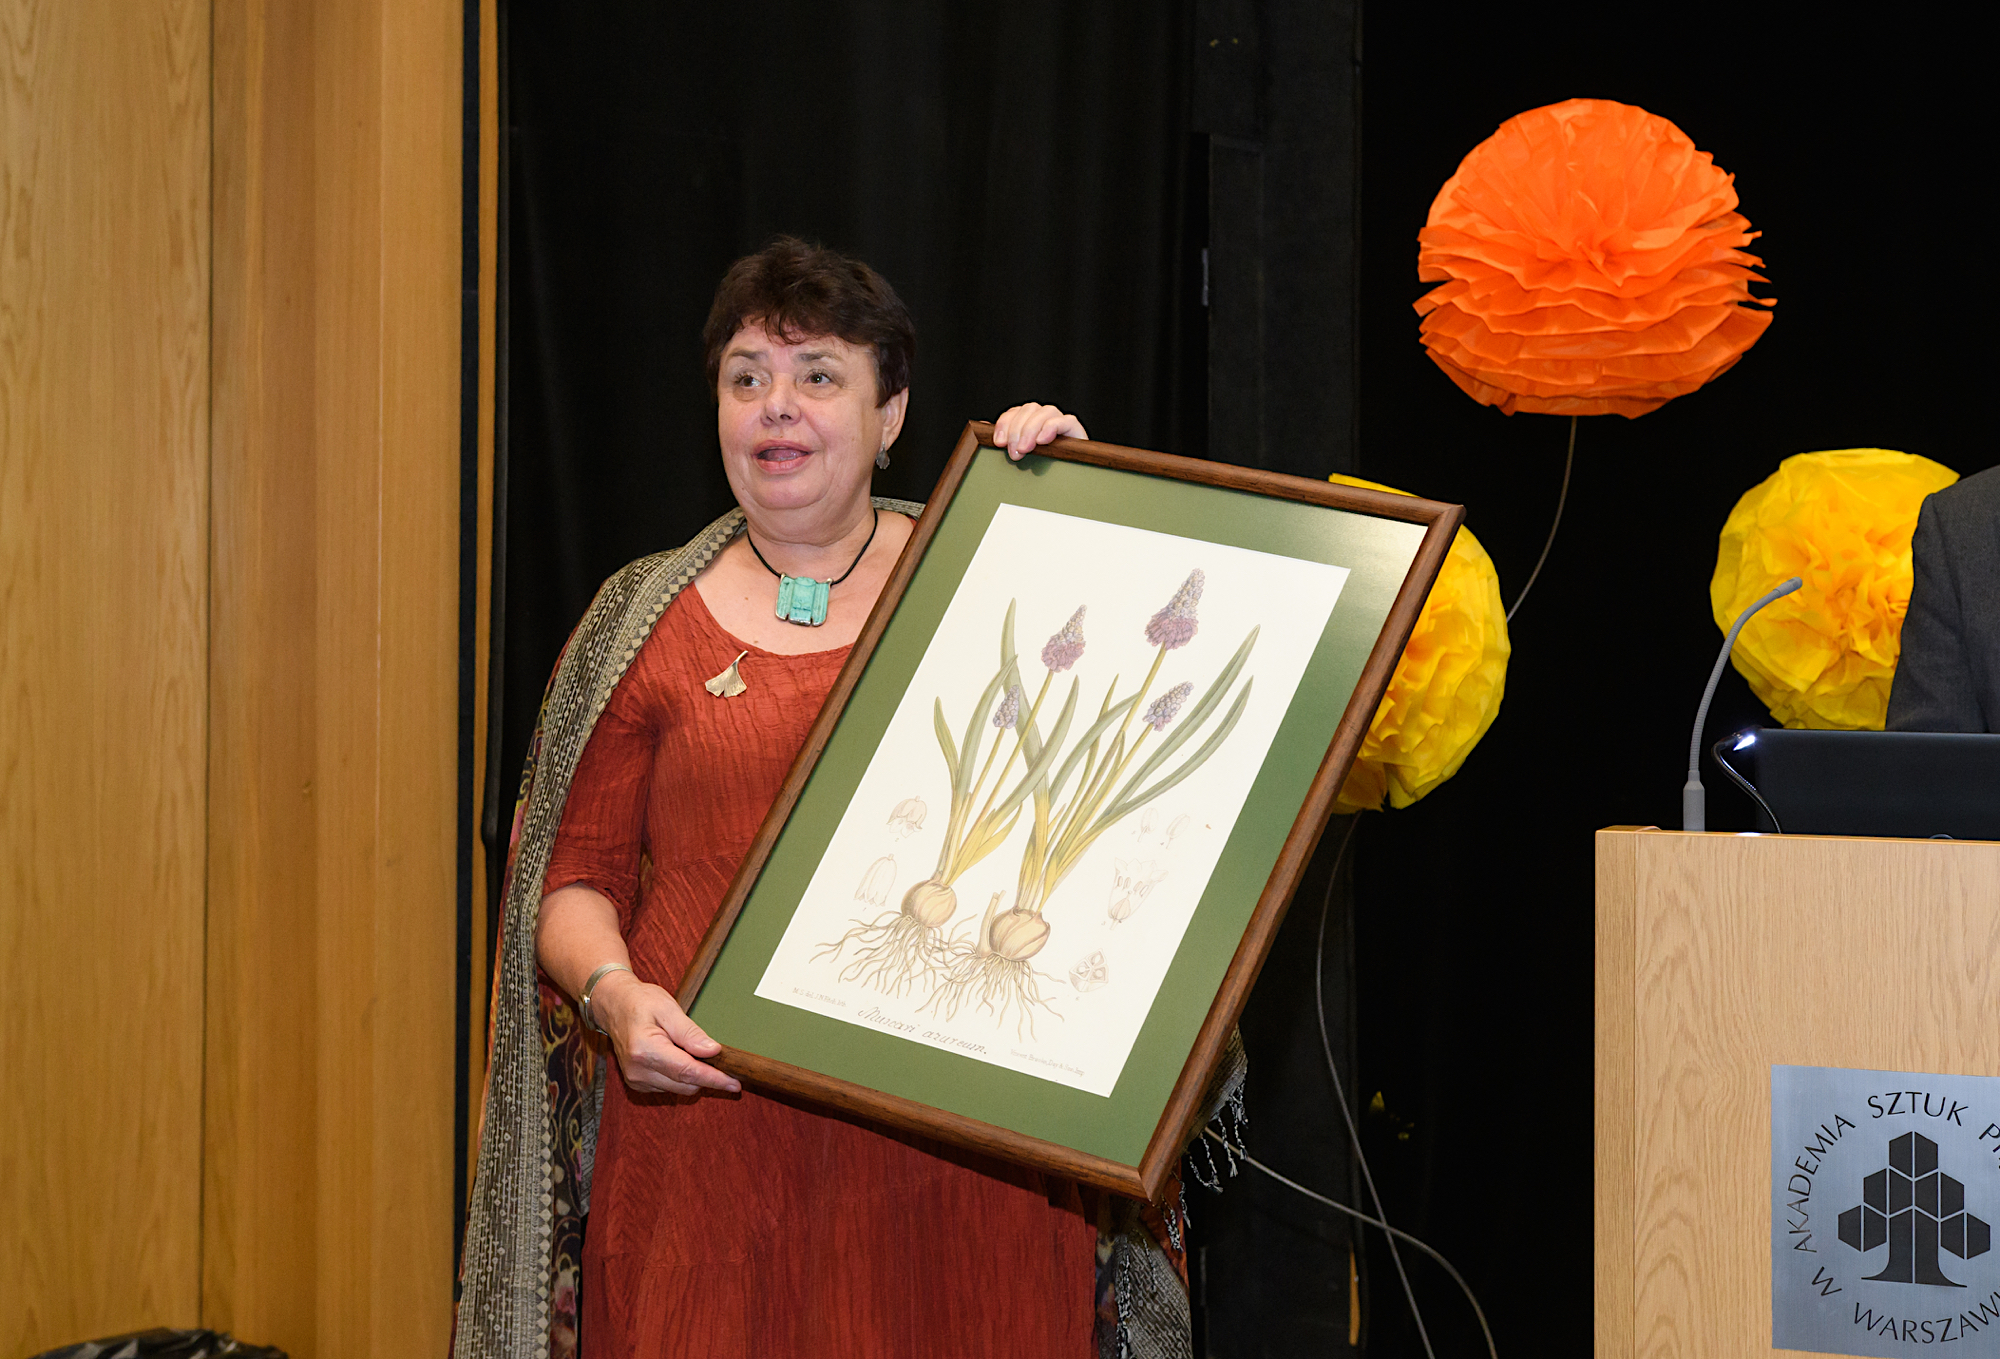 Hanna receving a gift at the 9th Education Congress held in Warsaw